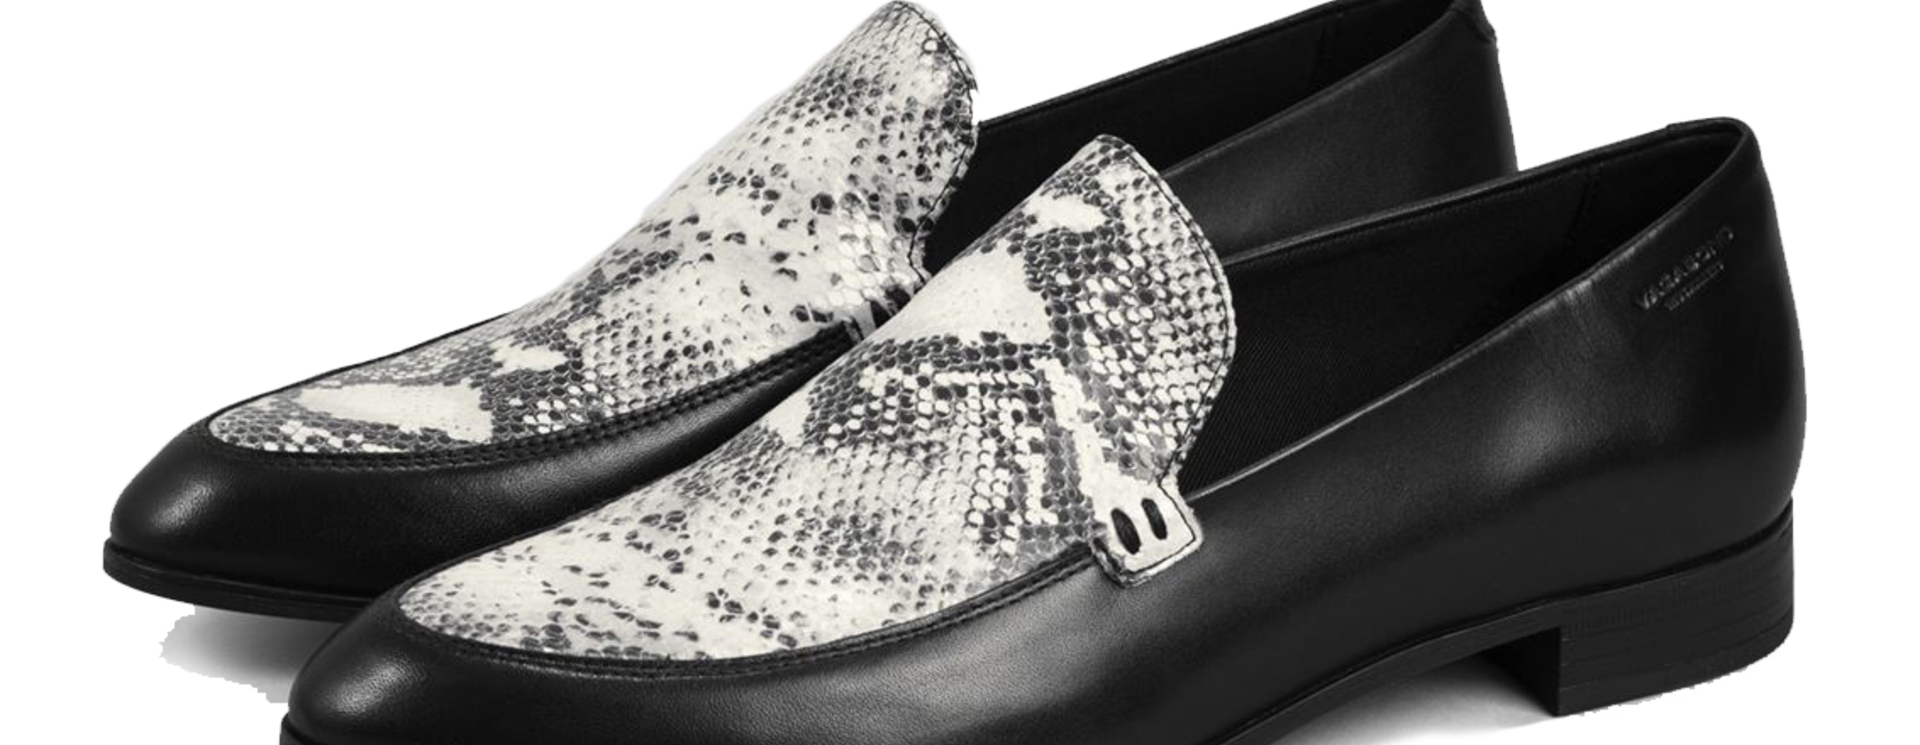 Shoes for the stylish gents & women